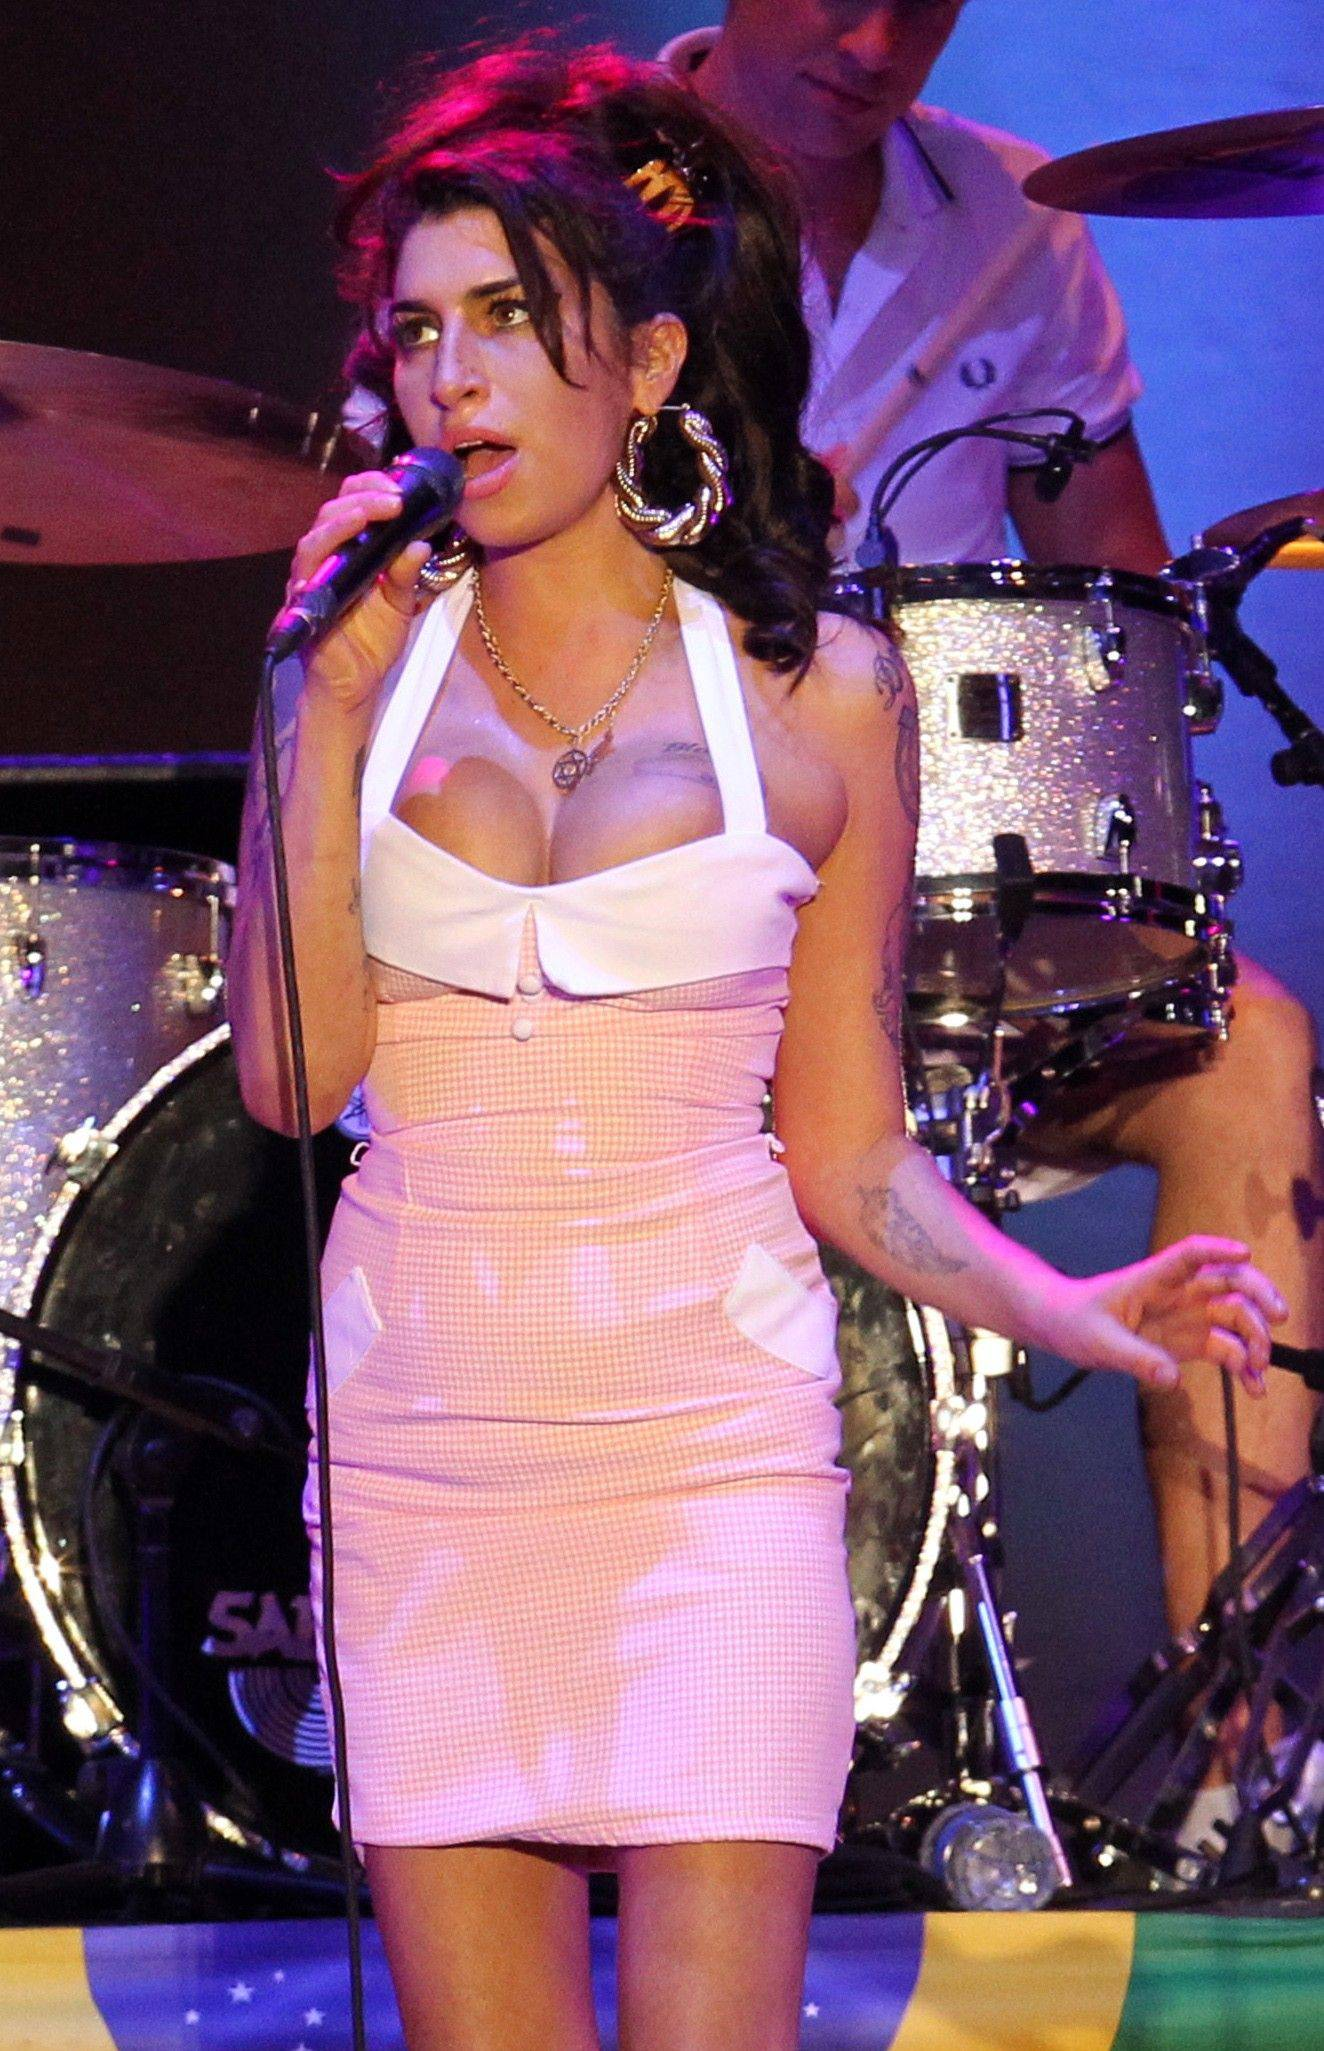 Amy Winehouse performs during her show in Florianopolis, Brazil.